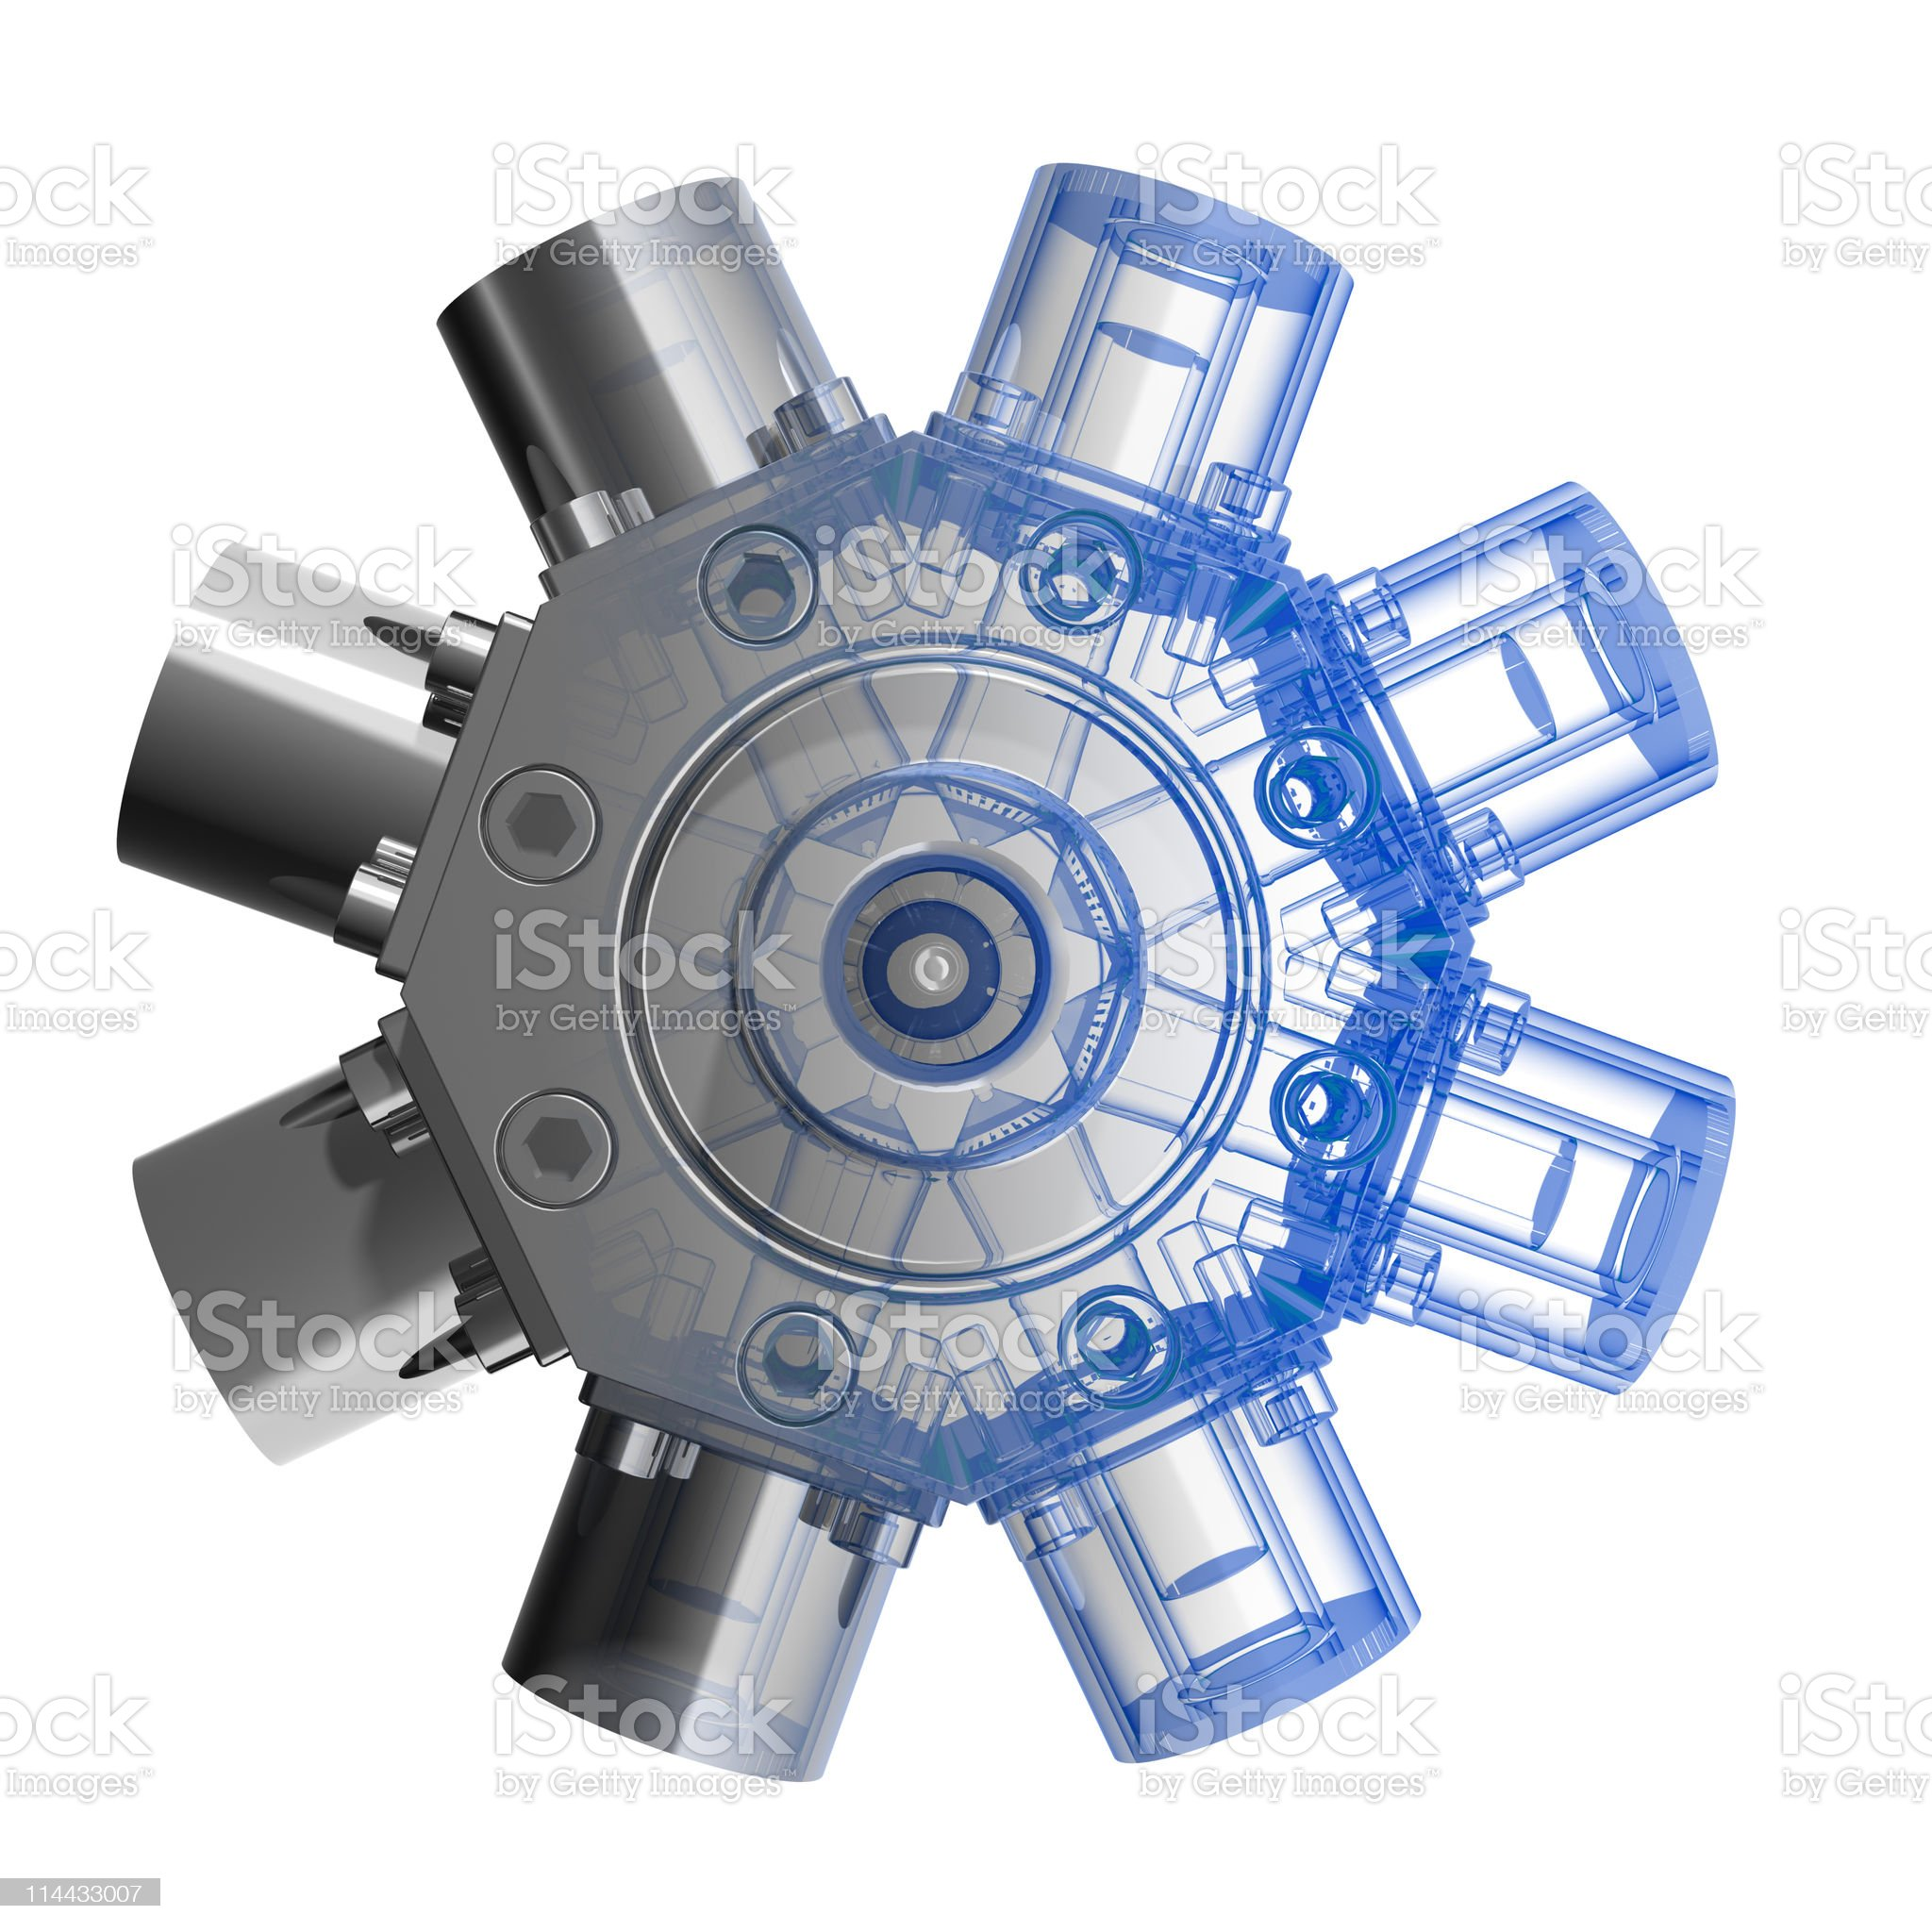 Rotarry engine (3D xray blue transparent) royalty-free stock photo